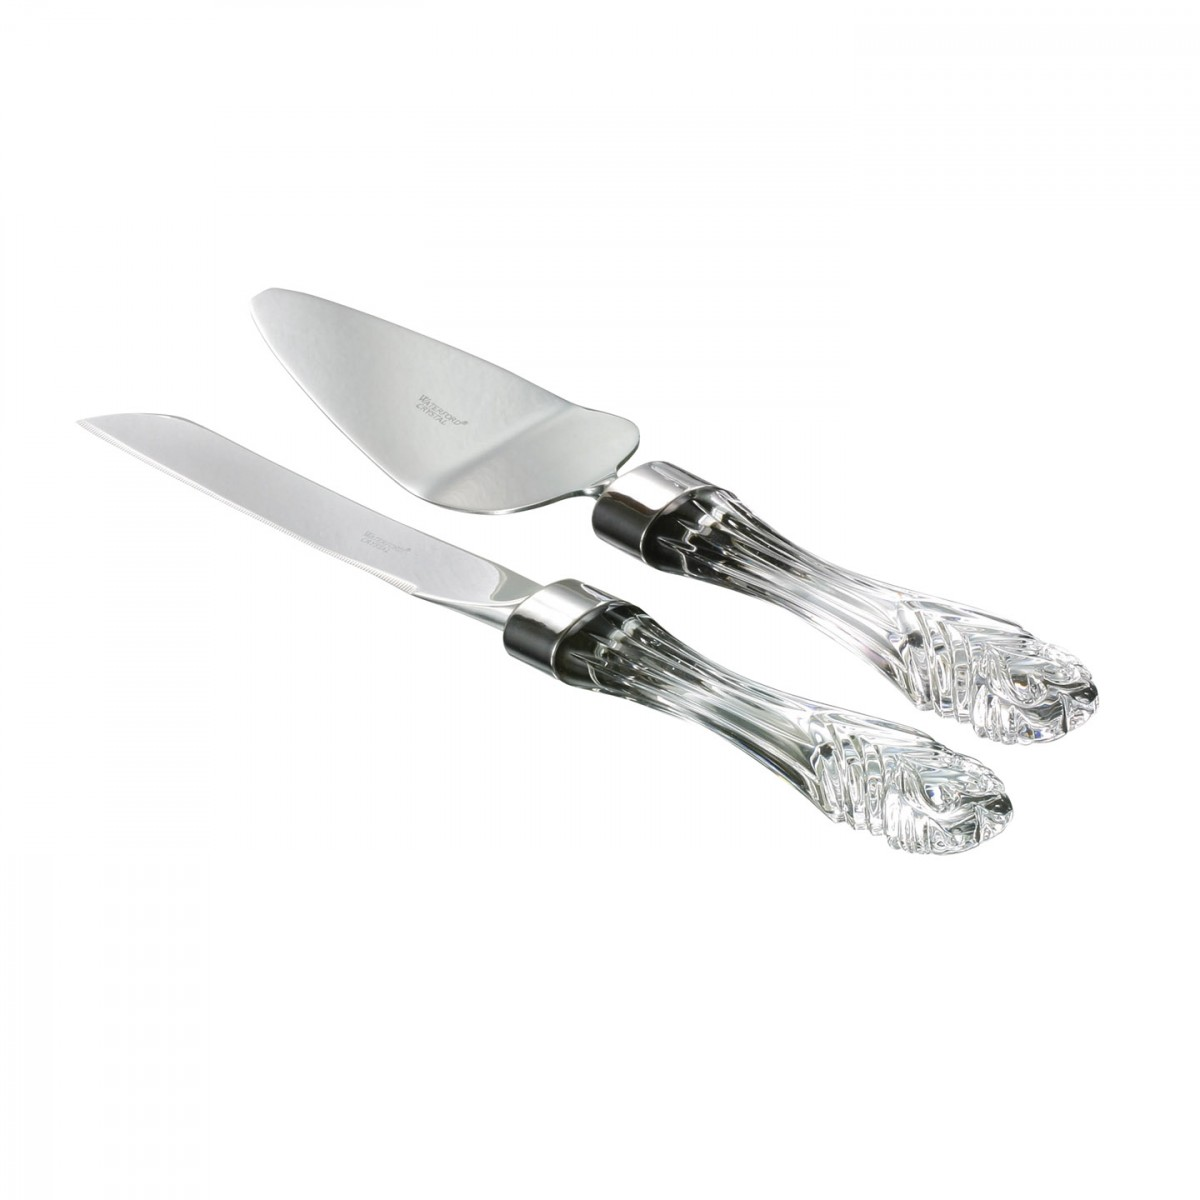 Waterford Wedding Cake Knife and Server, Crystal and Stainless Set